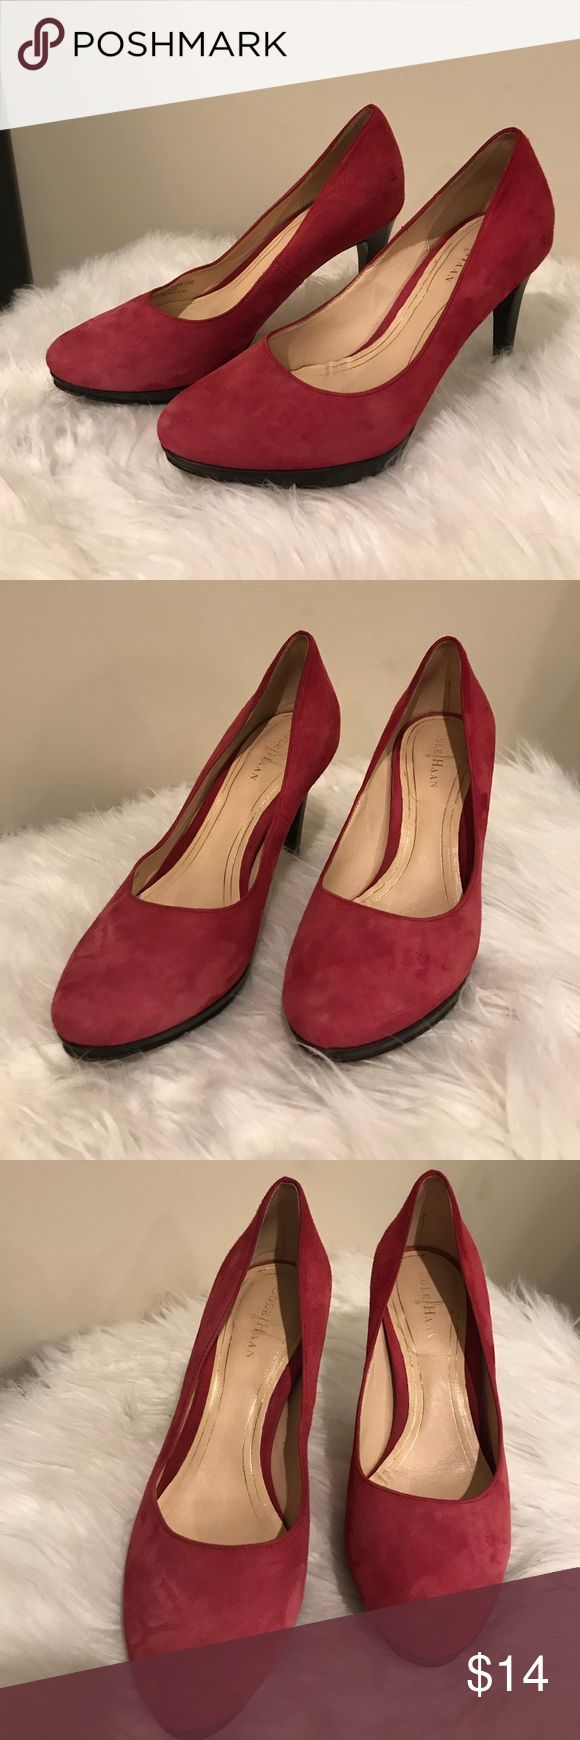 Red Suede Cole Haan Pumps Red Suede Cole Haan Pumps have some guns of wear mainly on bottom of shoe. No stains or marks on leather. Cole Haan Shoes Heels